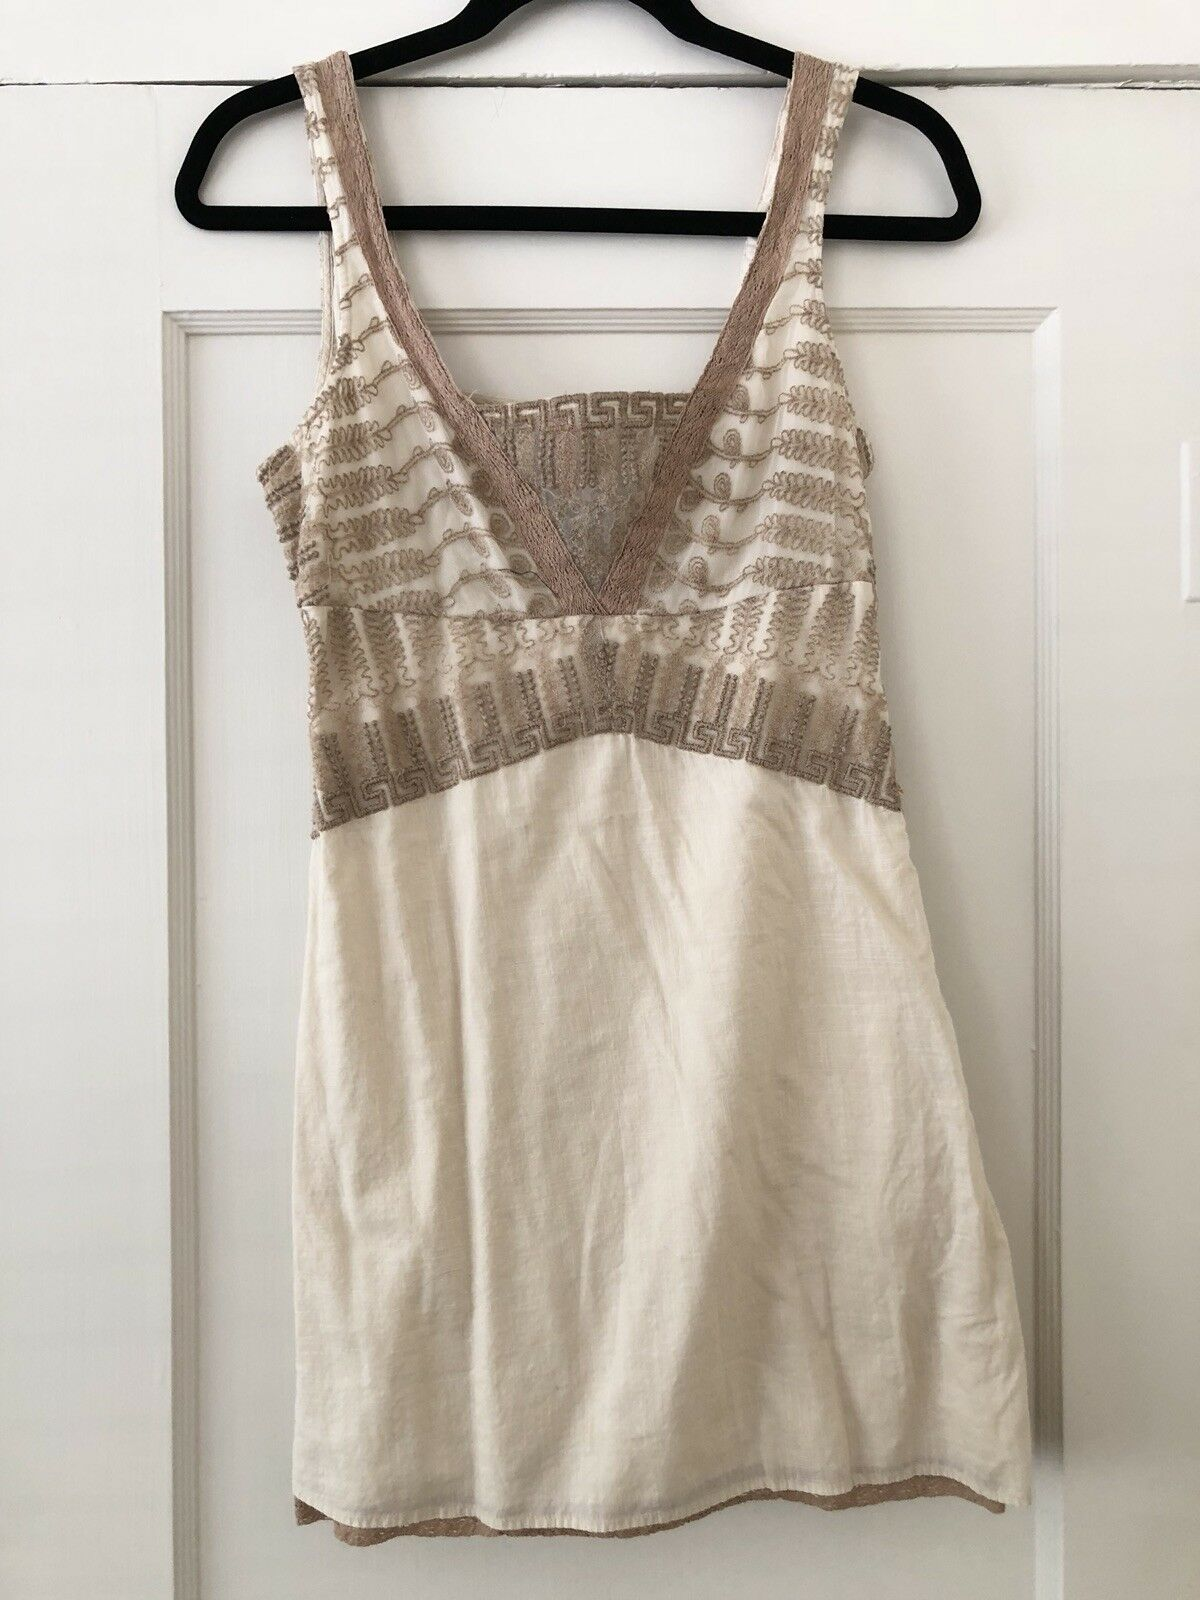 132bfb64767 FREE PEOPLE Off White and Beige Embroidered Embroidered Embroidered  Sleeveless Dress Tunic - Size 4 140dfa